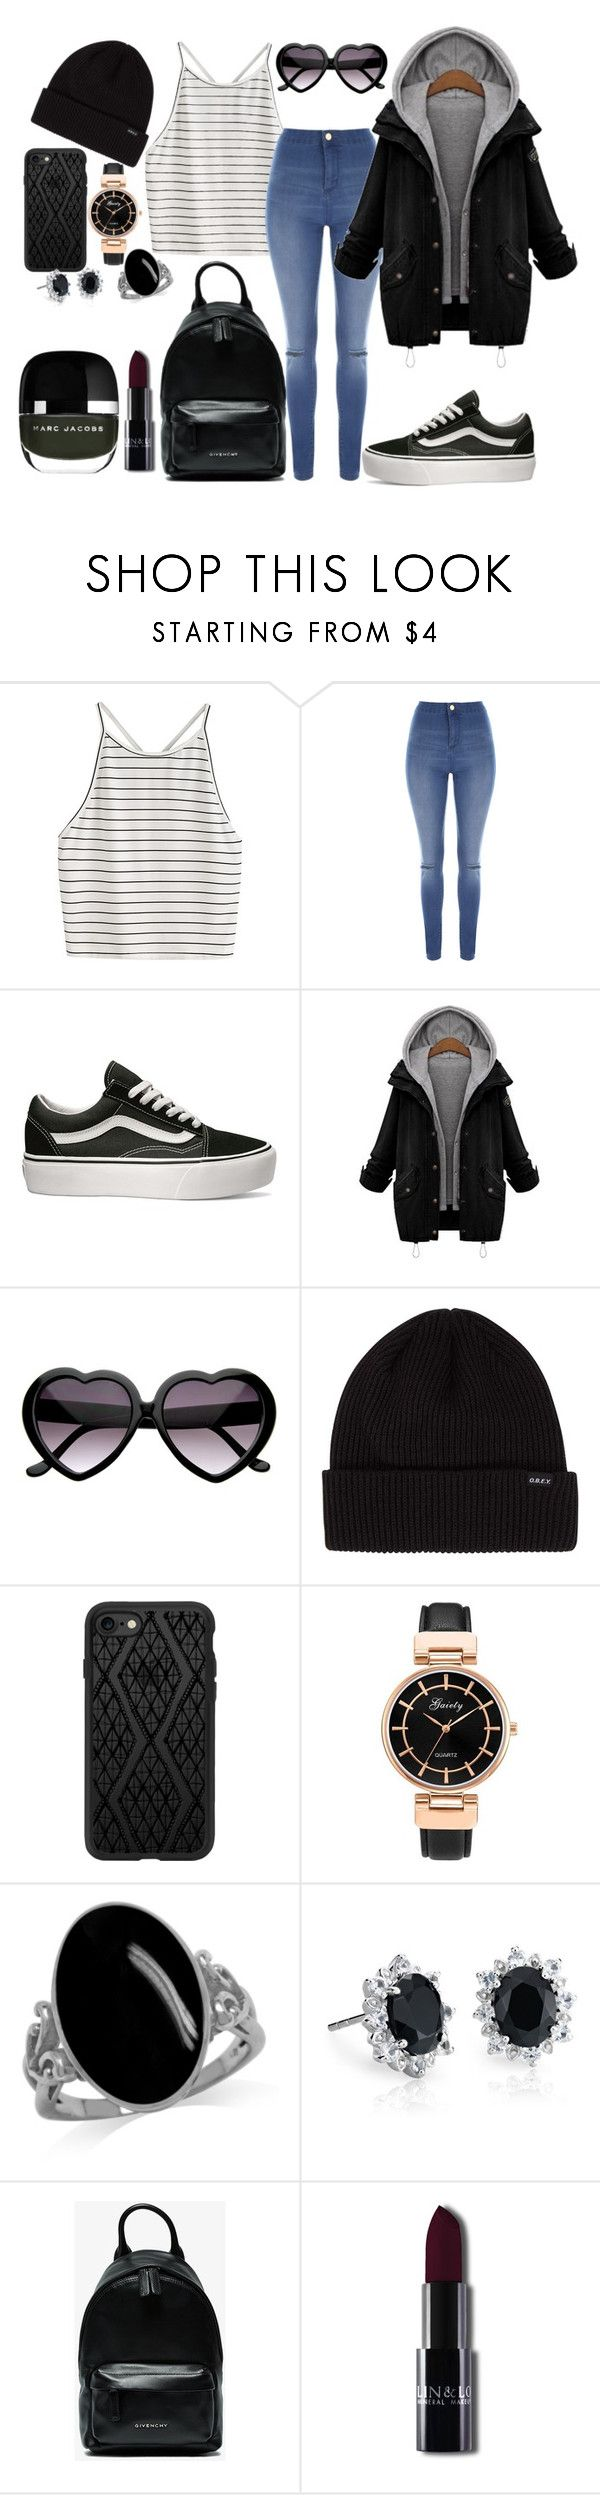 """""""Untitled #111"""" by amor-de-pandicornios on Polyvore featuring Jane Norman, Vans, Casetify, Blue Nile and Givenchy"""